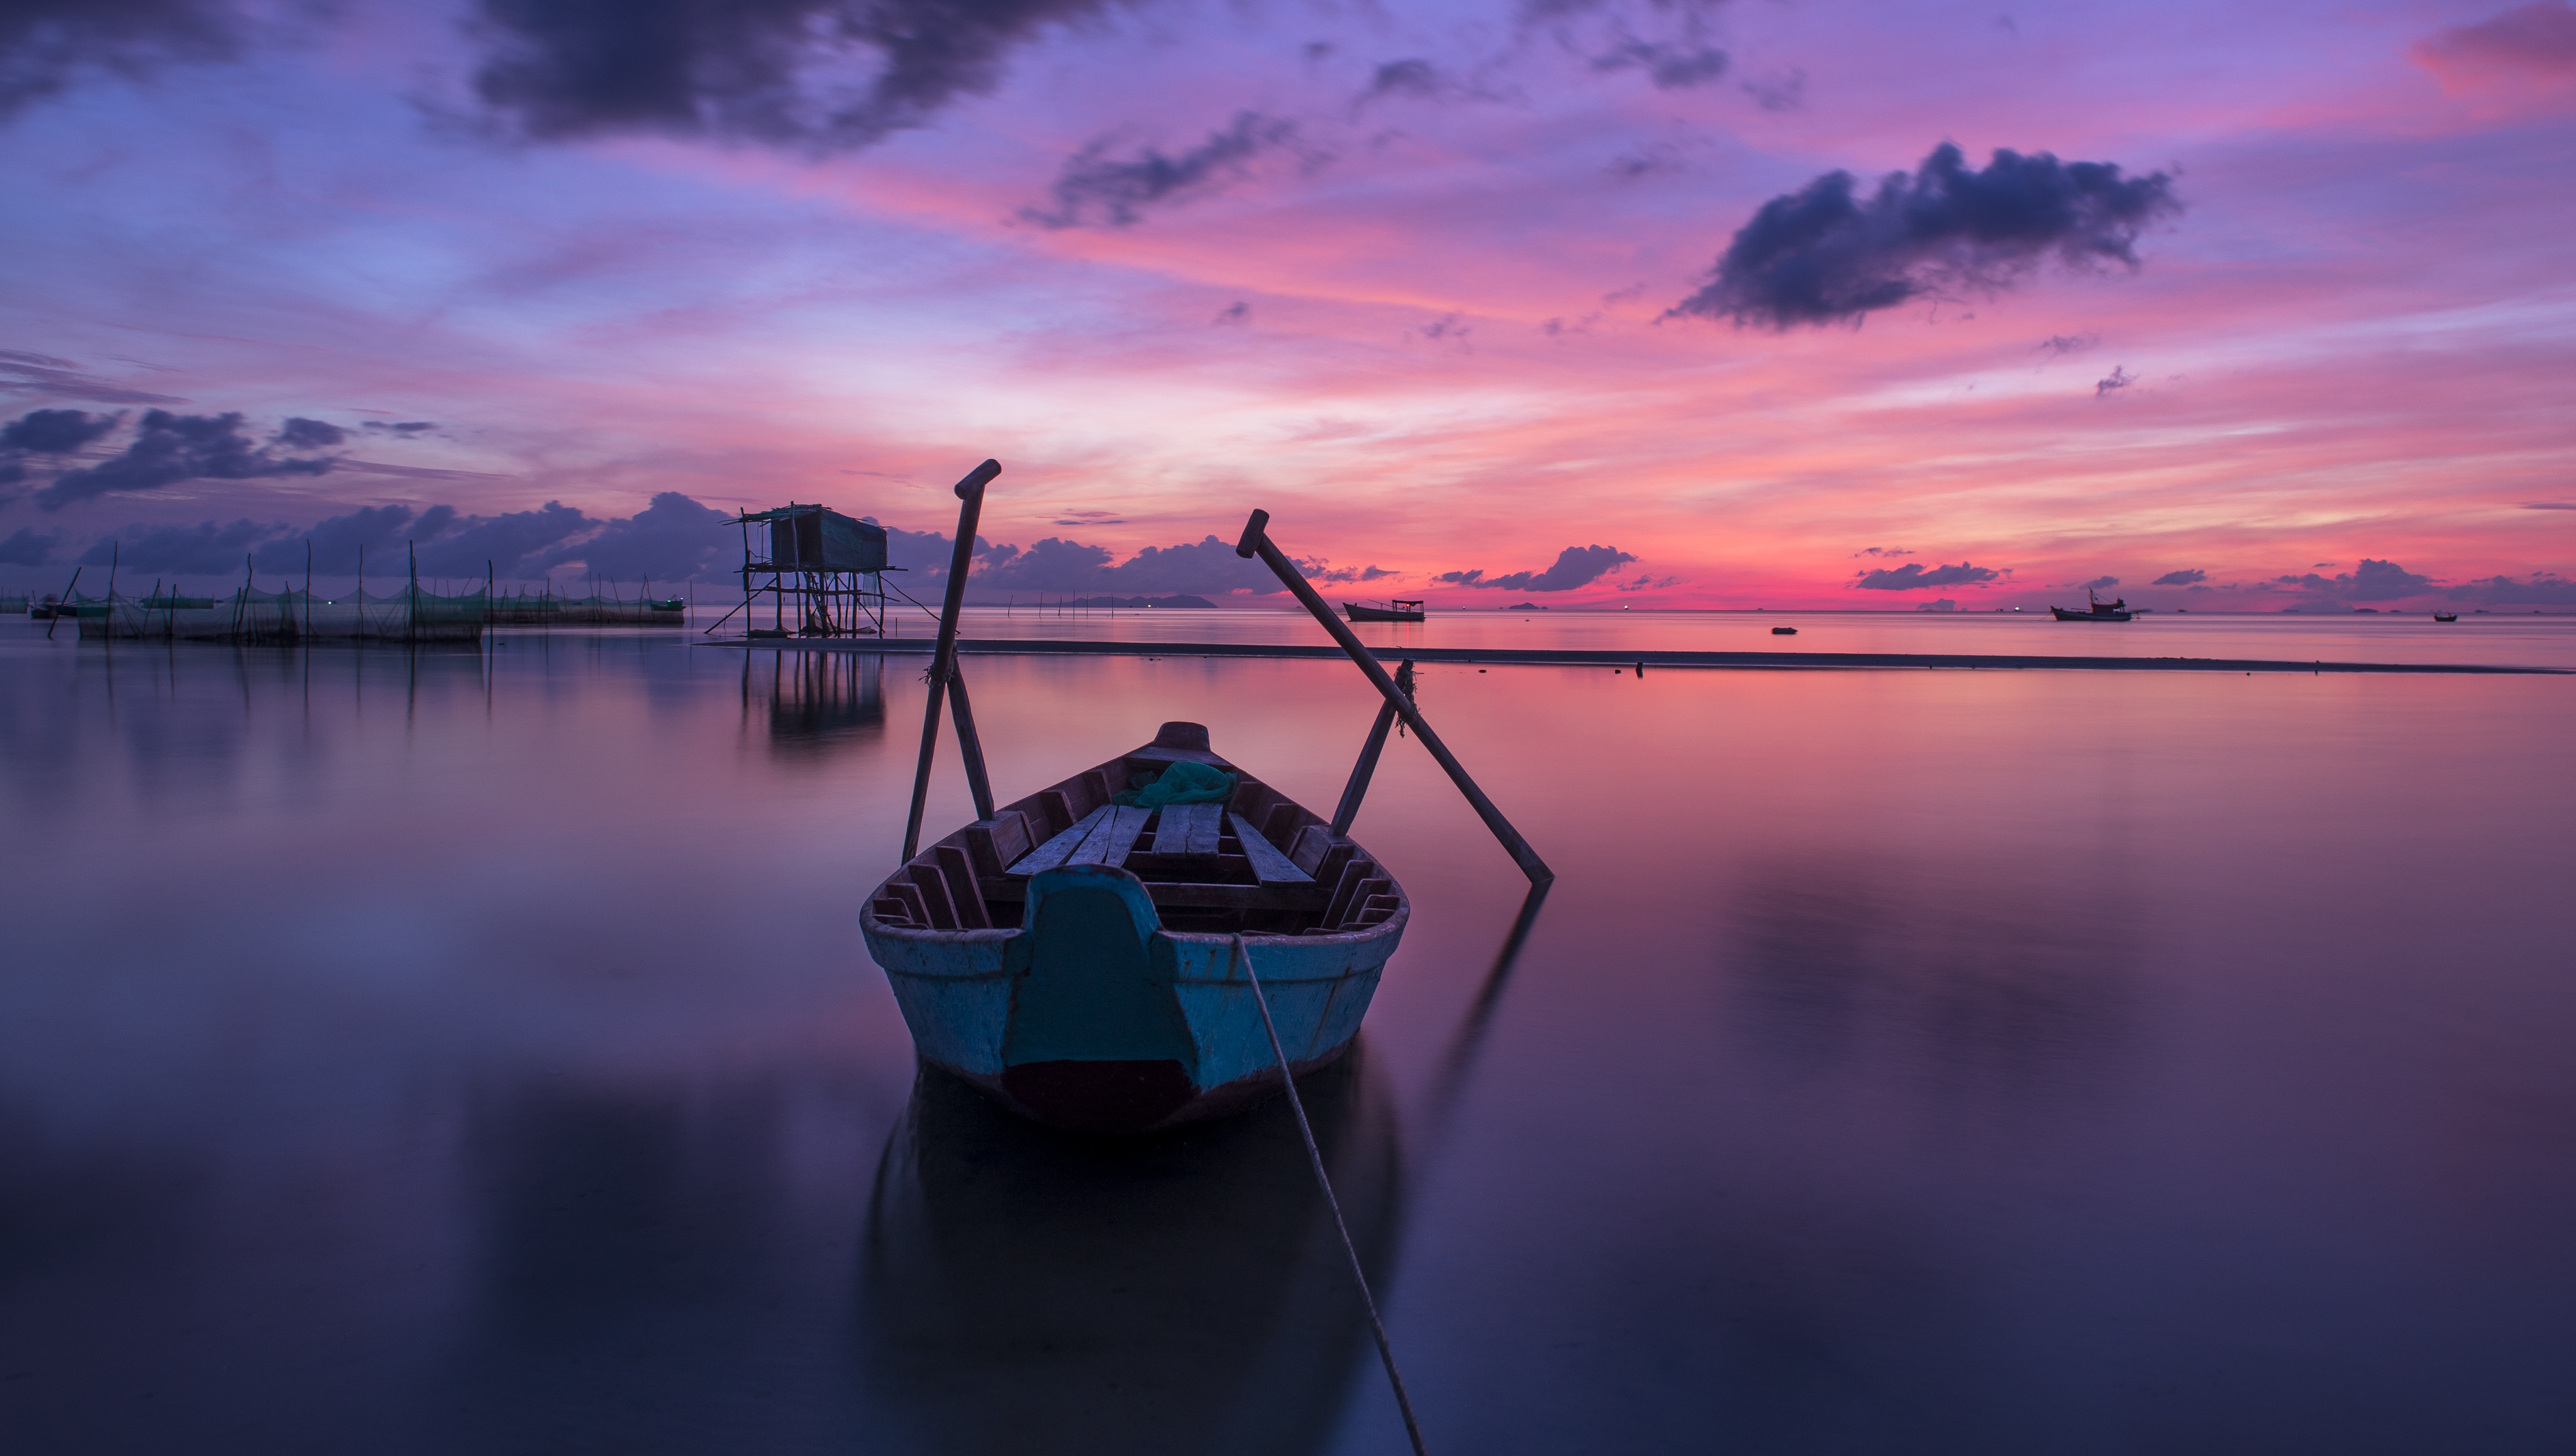 Phu Quoc An Island In Thailand 4k Ultra HD Wallpaper And Background